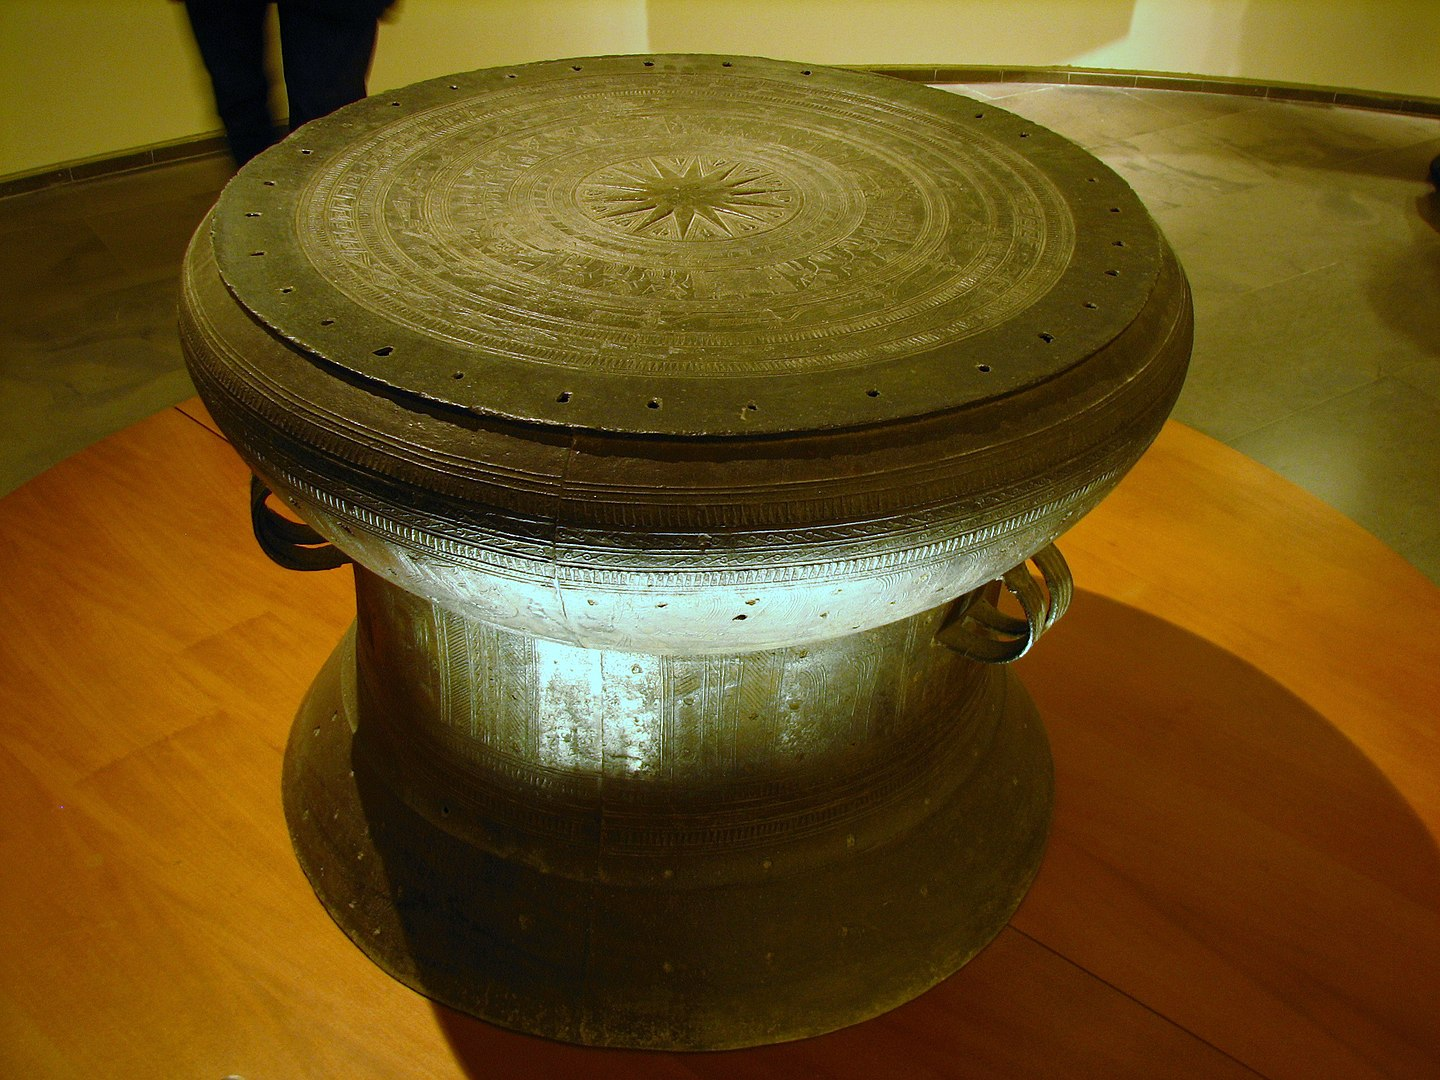 Image of a Dong Son bronze drum at the Vietnam National Museum of History in Hanoi